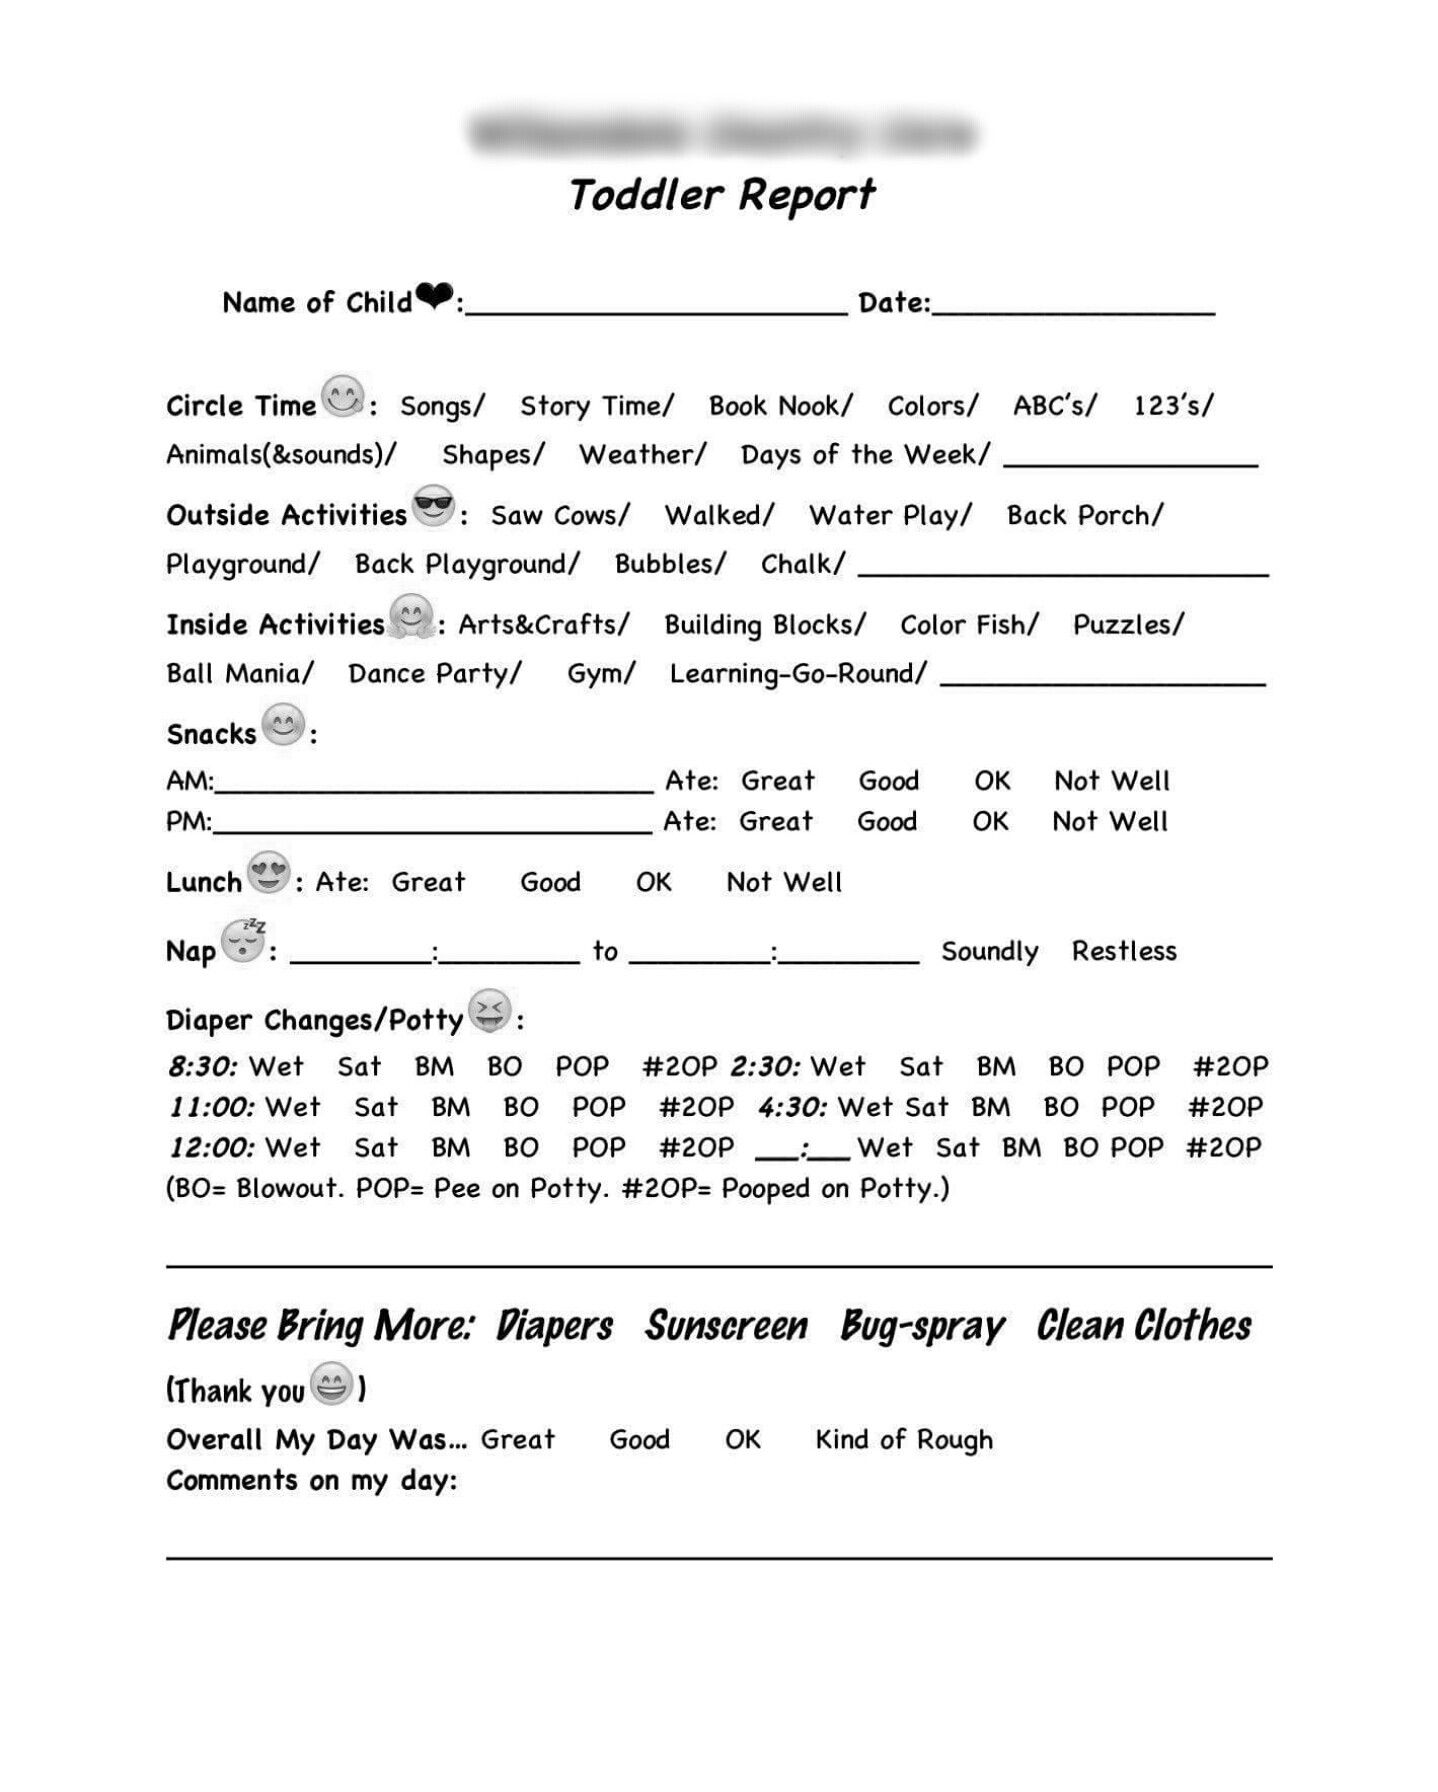 Made My Own Toddler Reports